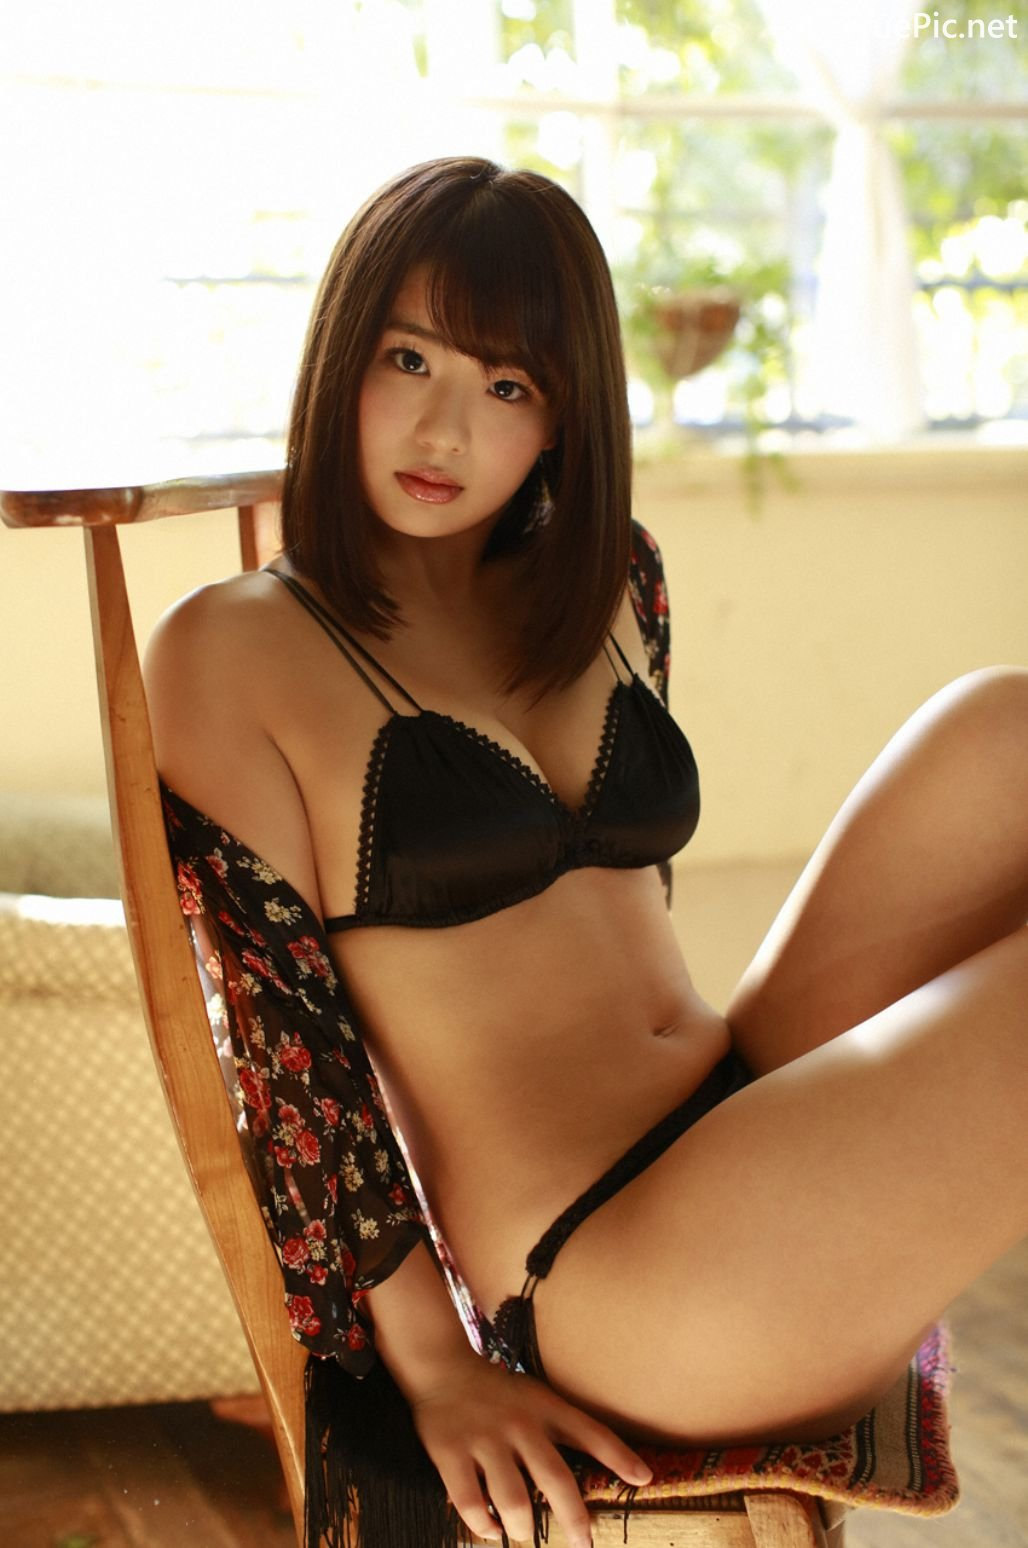 Image-Japanese-Actress-And-Model-Natsumi-Hirajima-Sexy-Lingerie-Queen-TruePic.net- Picture-5